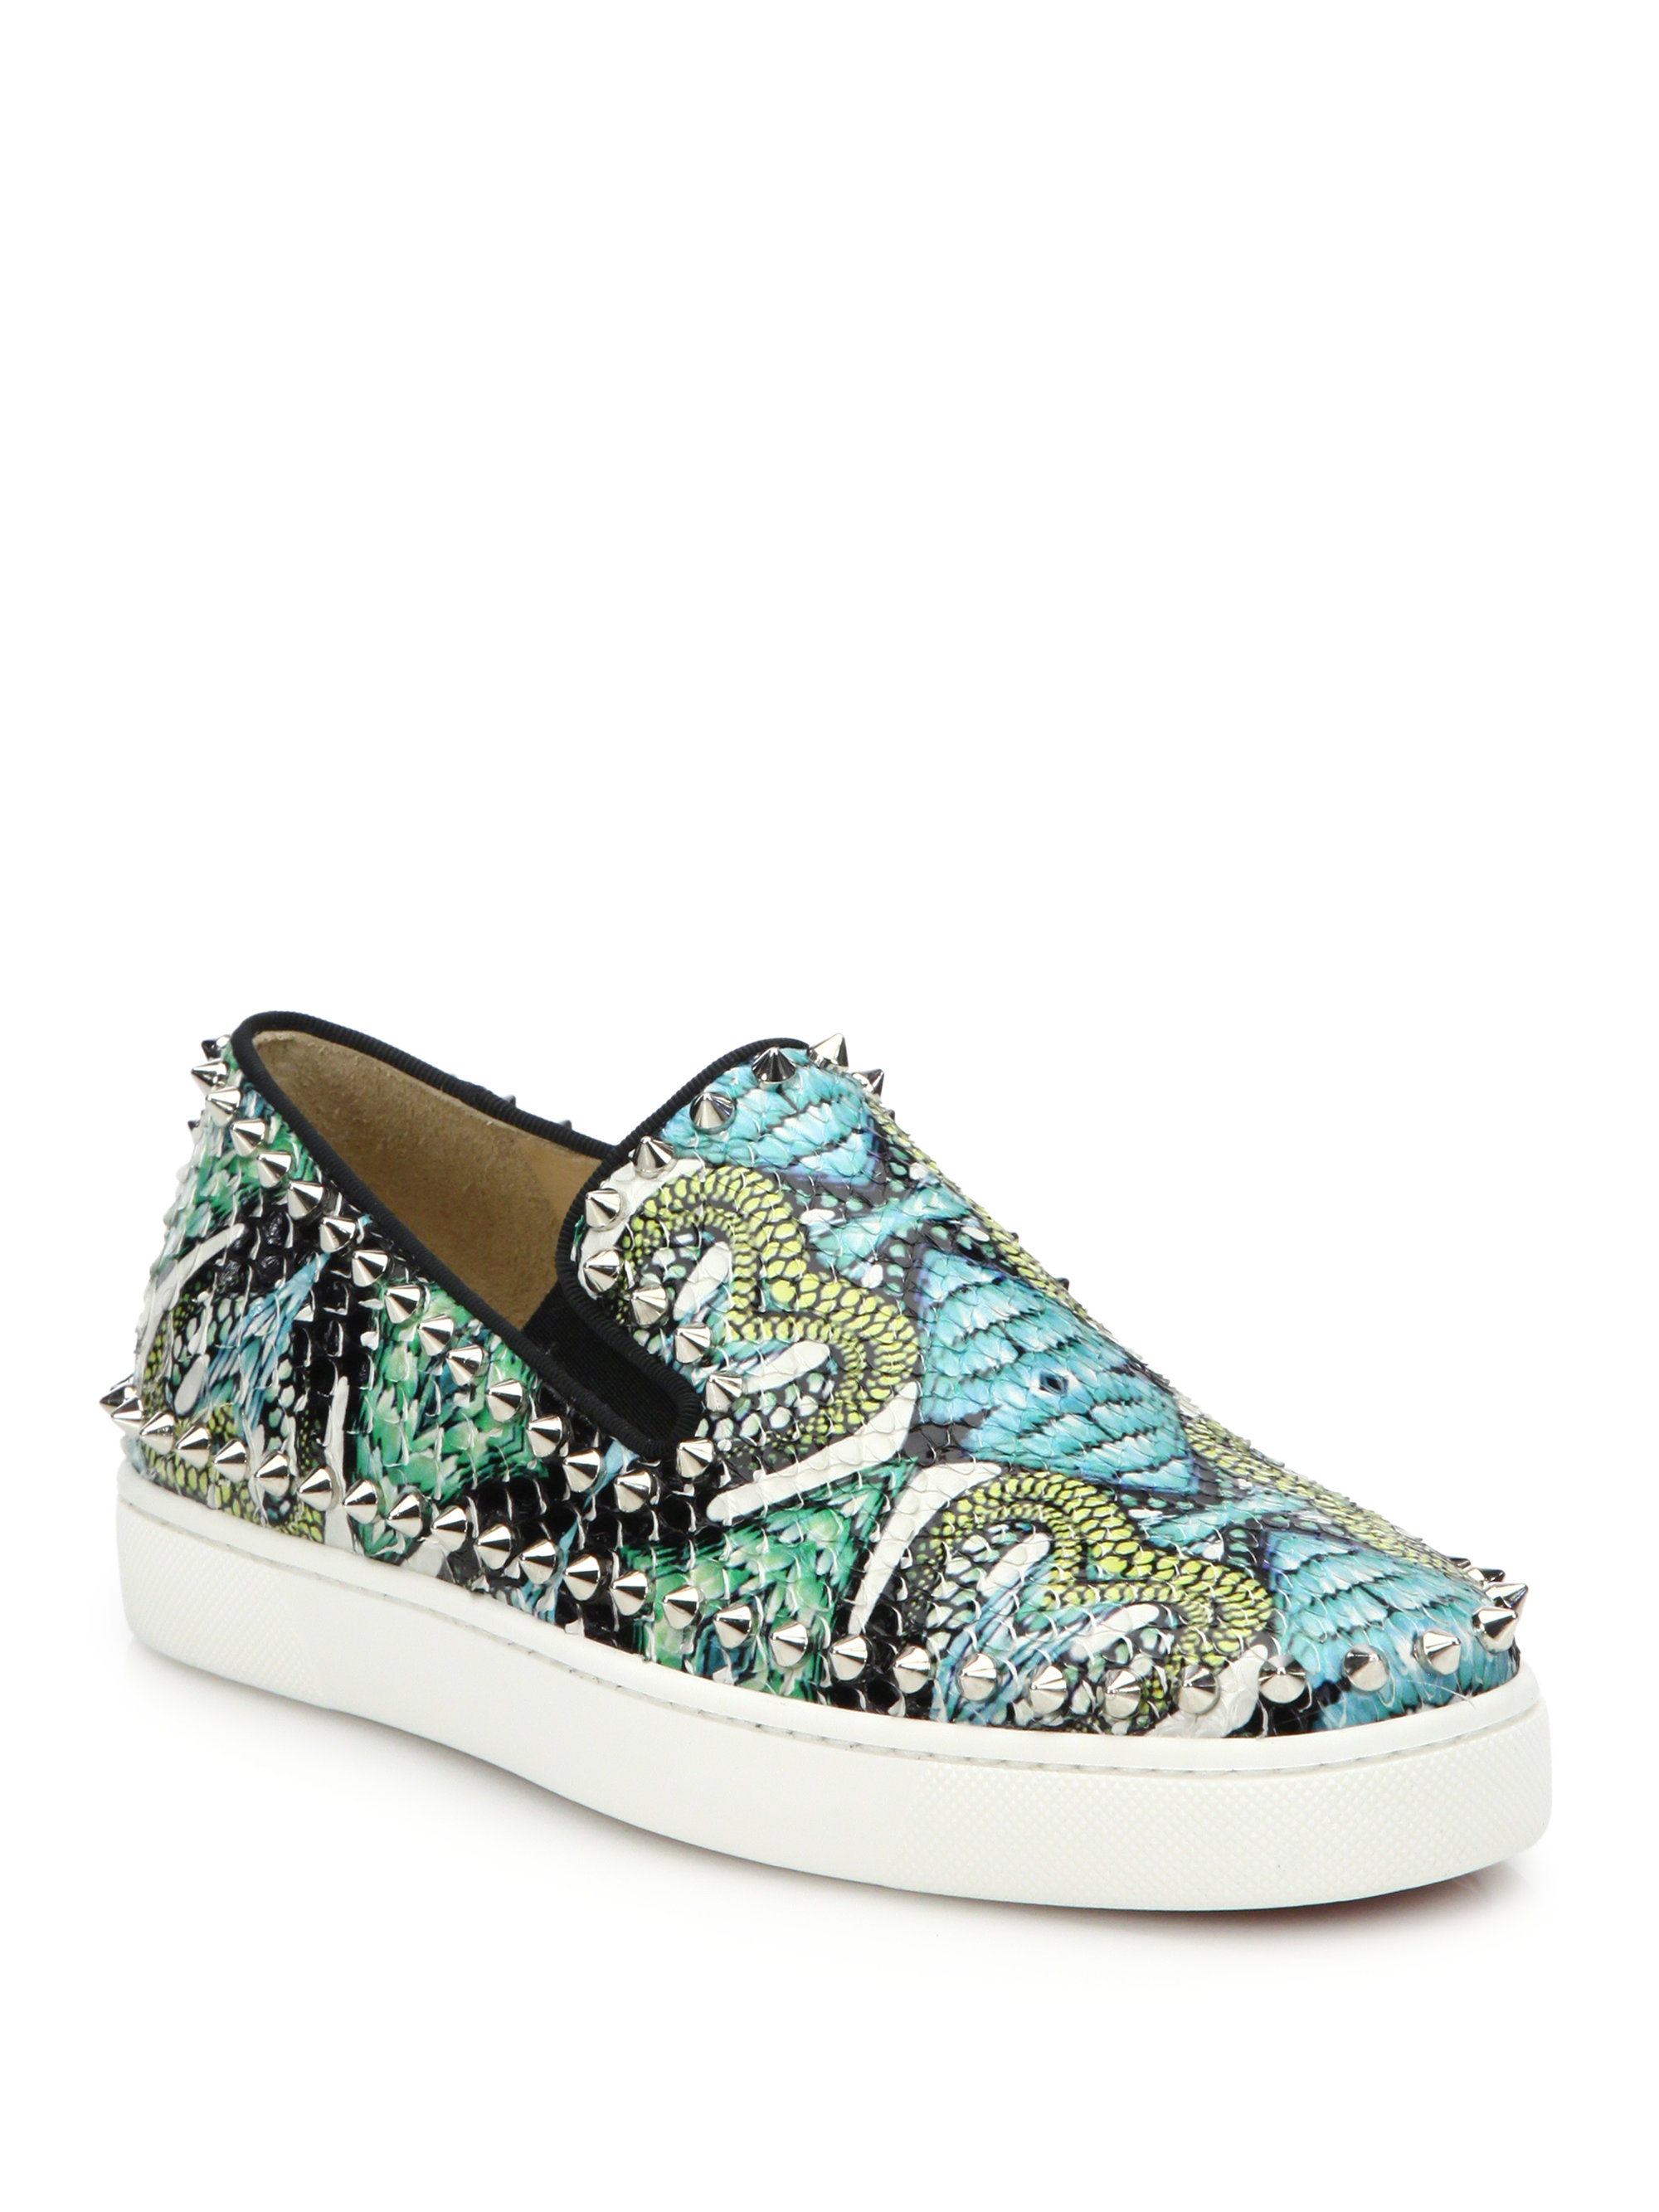 10a0fd15d62 ... coupon code lyst christian louboutin studded printed python skate  sneakers in blue f051a 4bf00